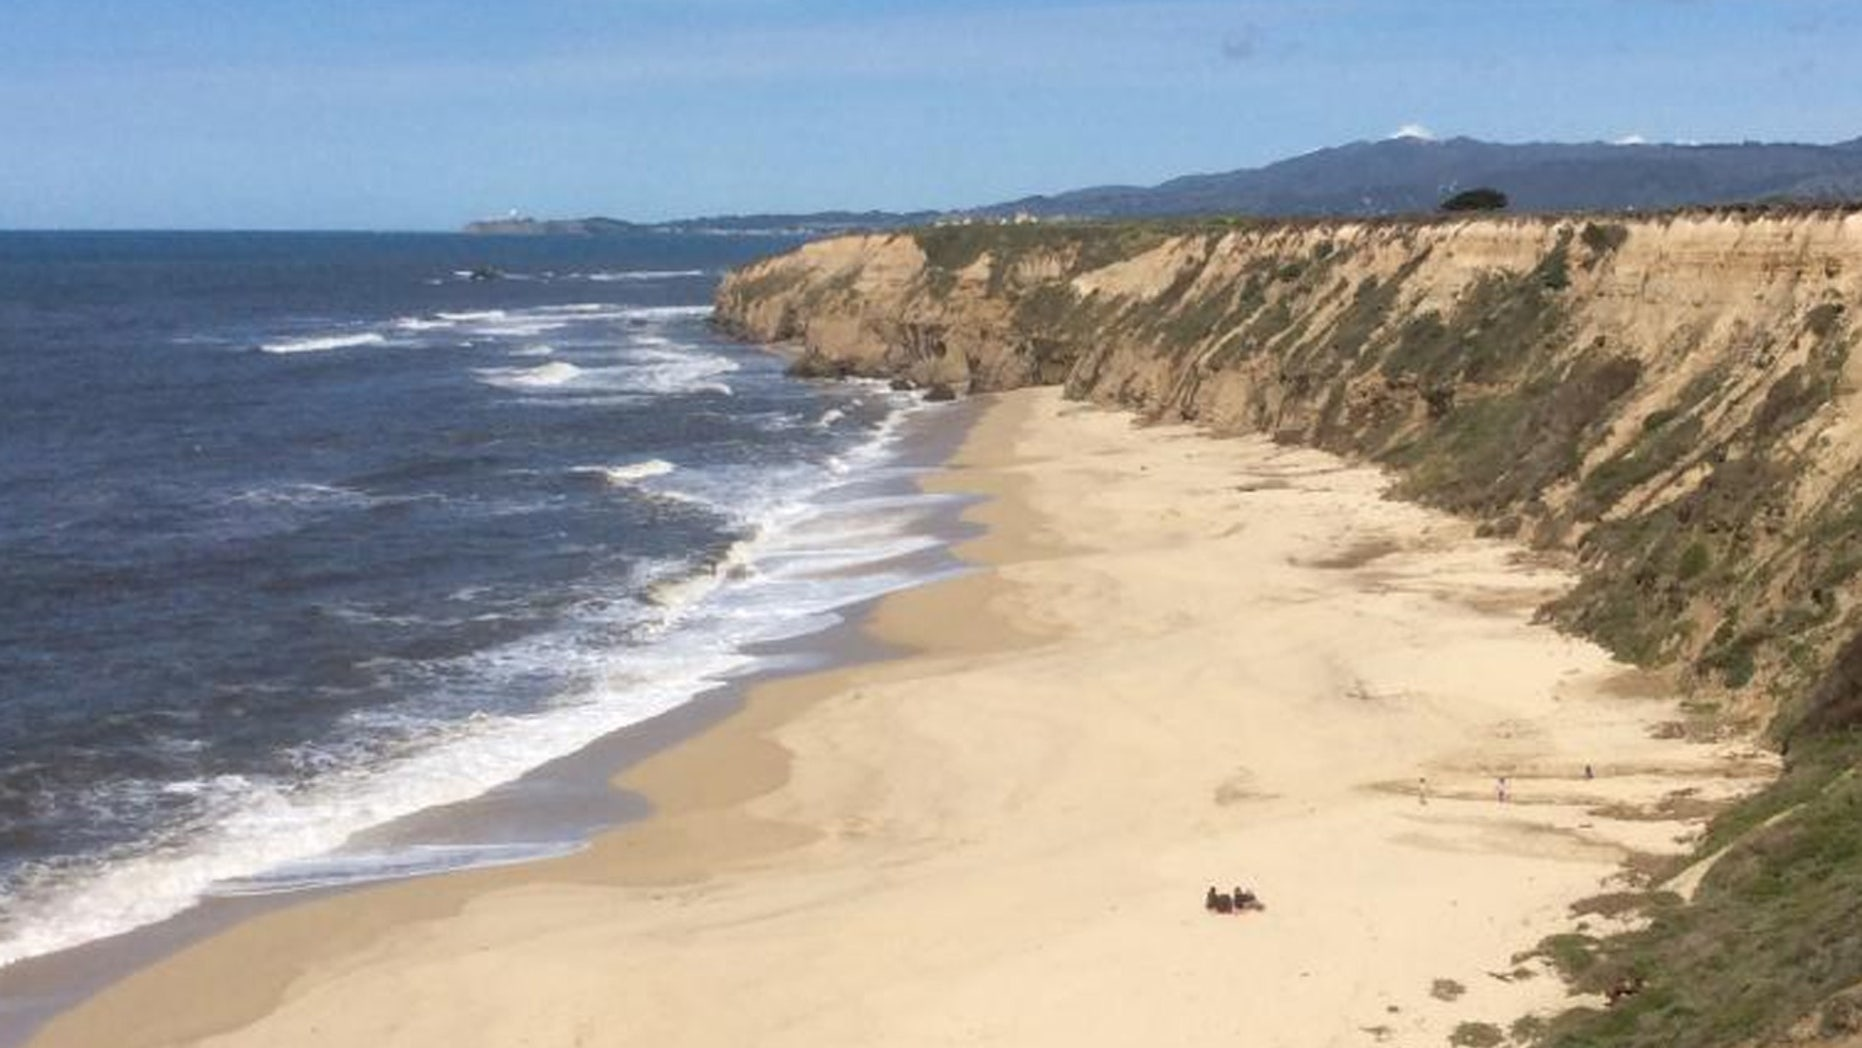 A 47-year-old woman on Sunday drowned while trying to save three children swept away off a beach in California.